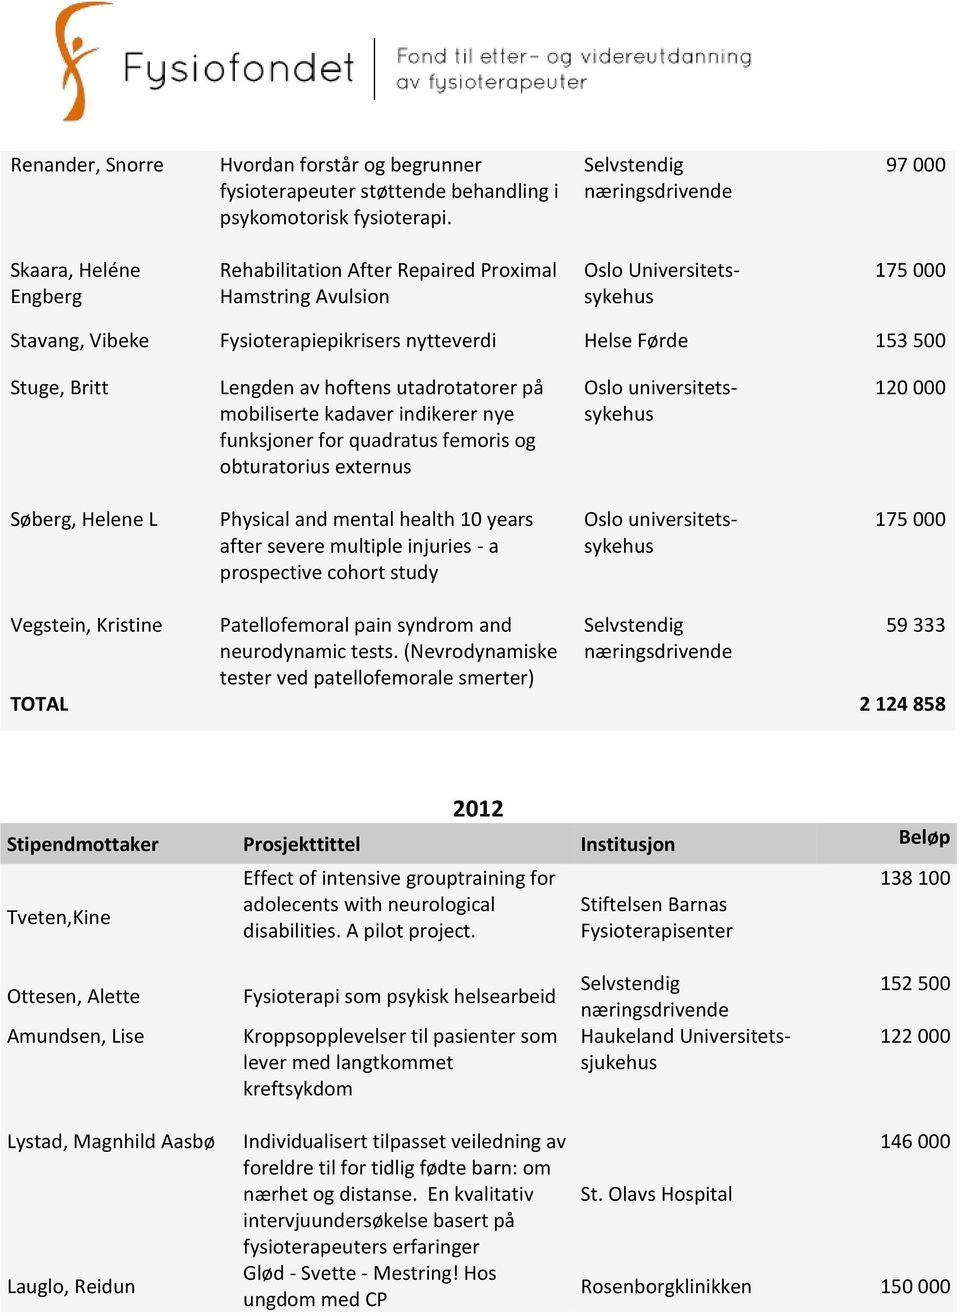 Lengden av hoftens utadrotatorer på mobiliserte kadaver indikerer nye funksjoner for quadratus femoris og obturatorius externus 120 000 Søberg, Helene L Physical and mental health 10 years after